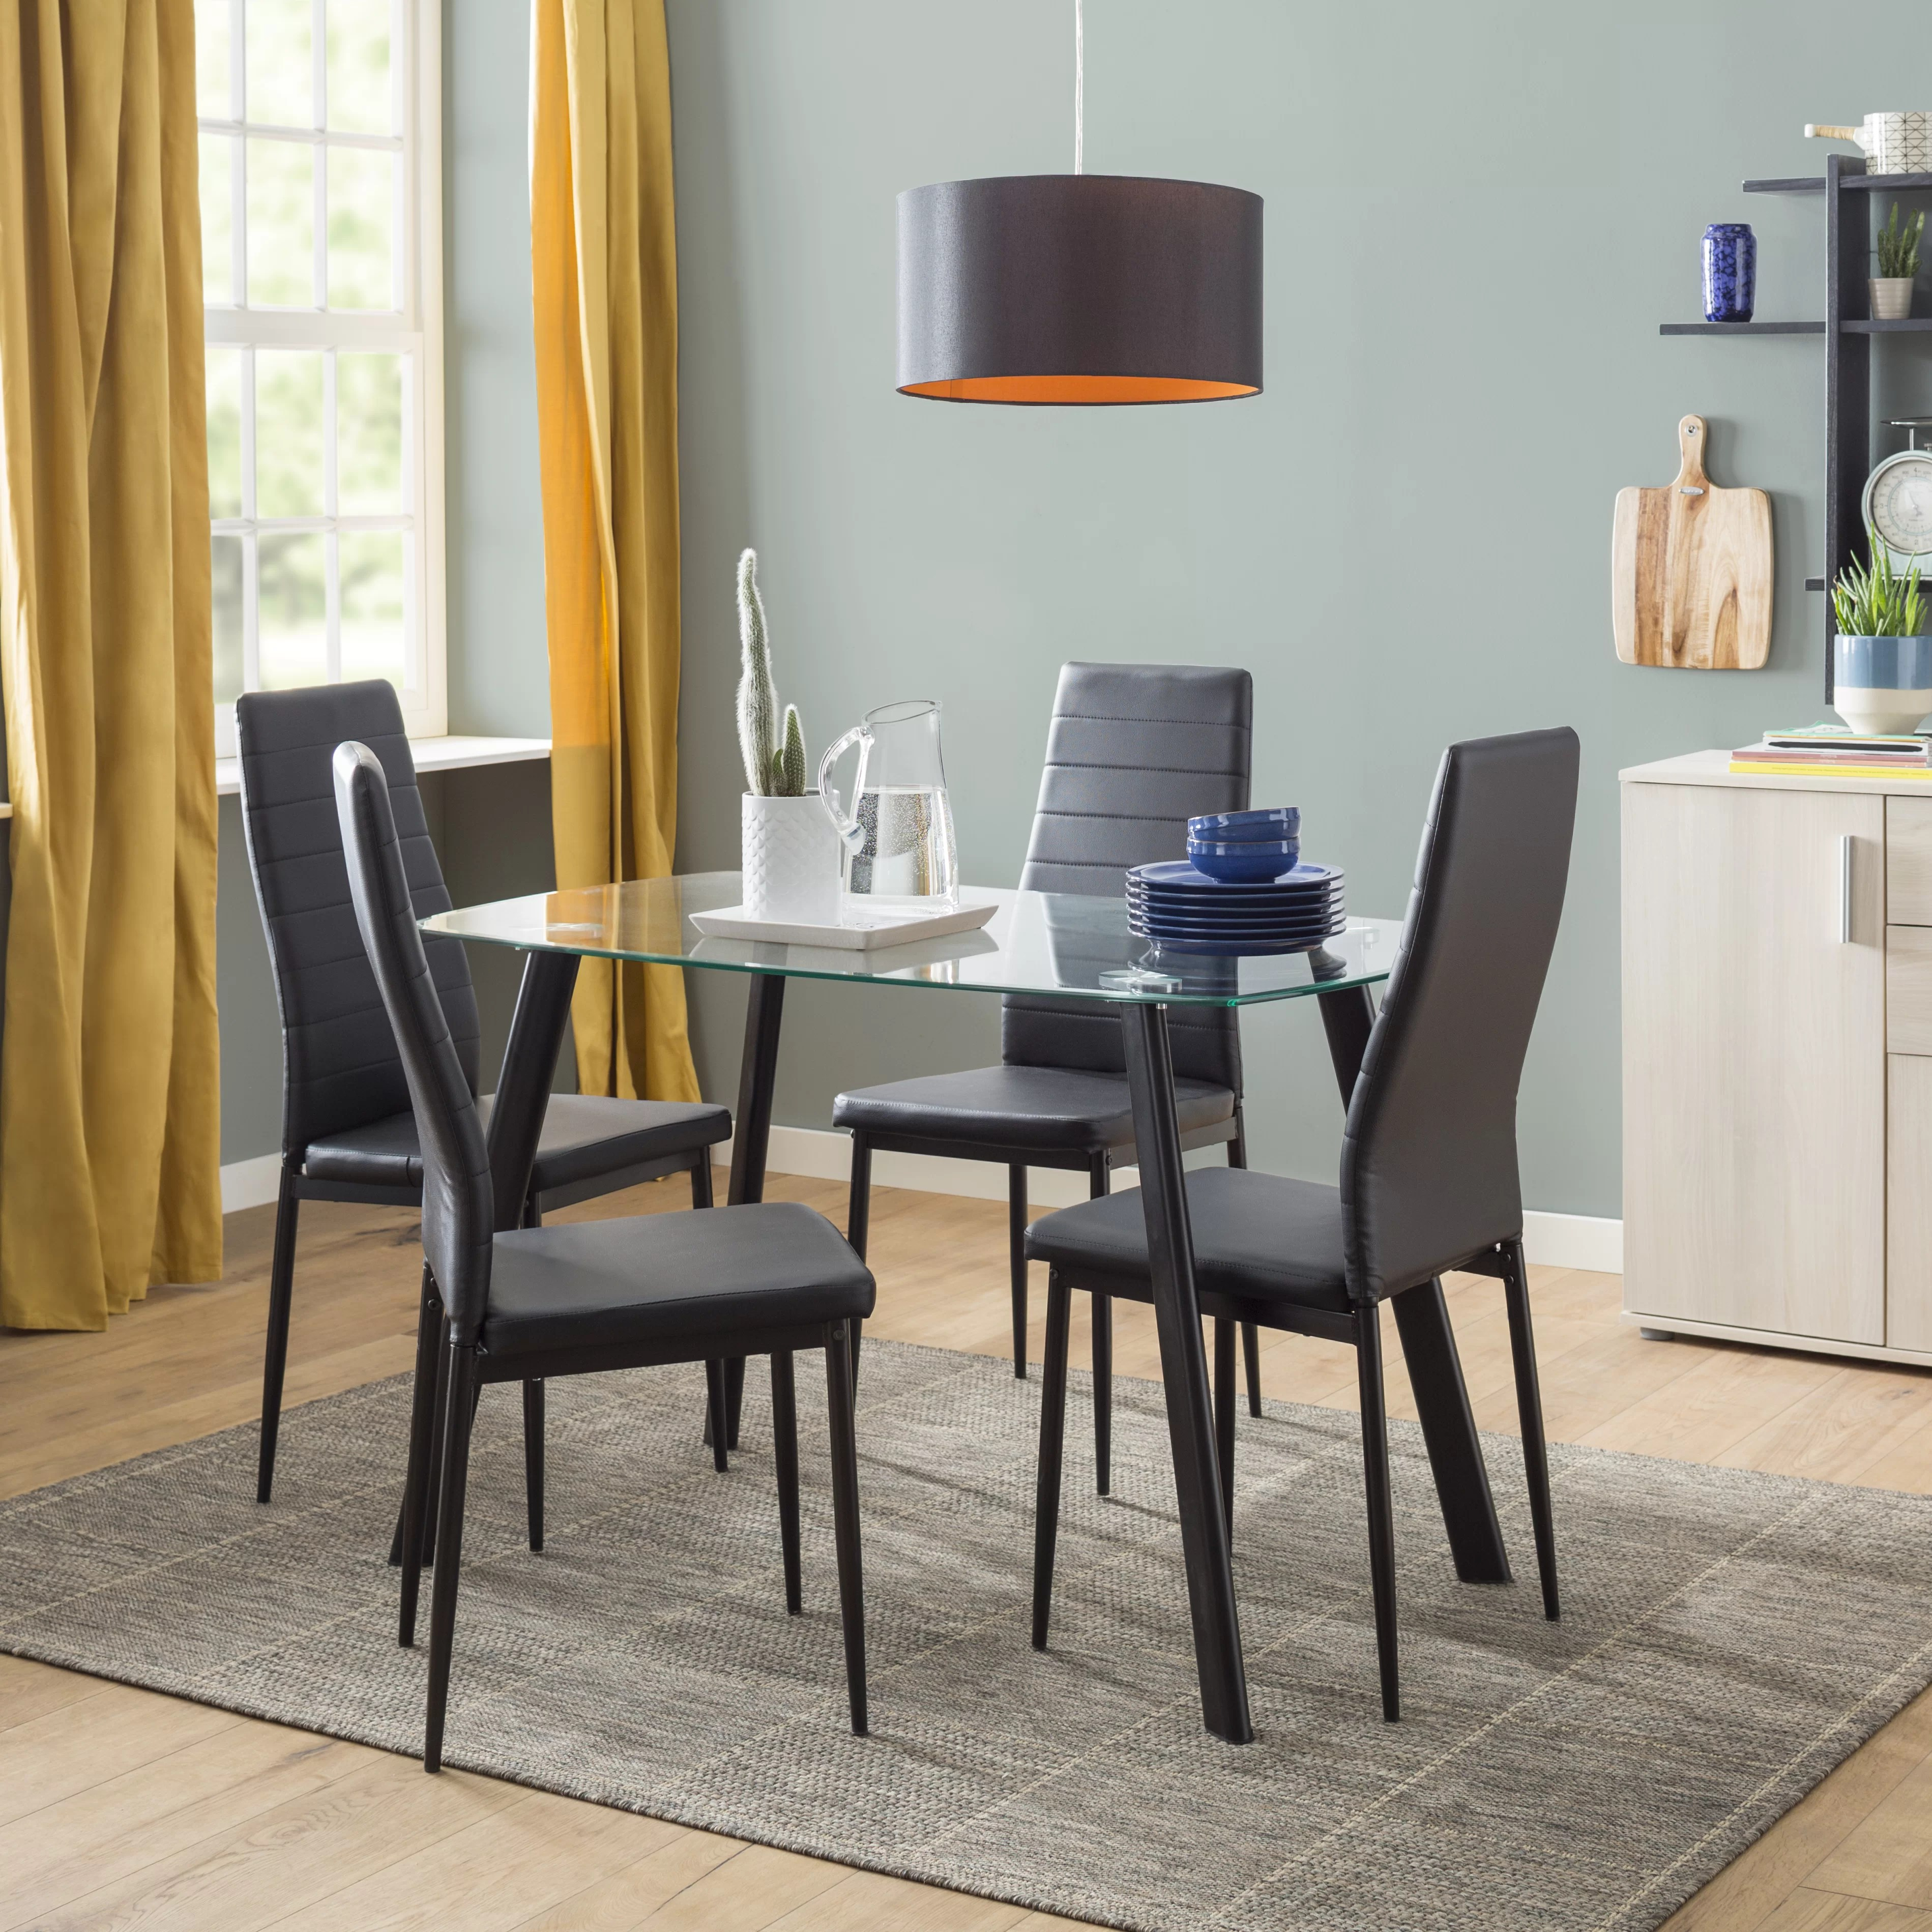 Dining Room Chairs Set Of 4 Hillary Dining Set With 4 Chairs